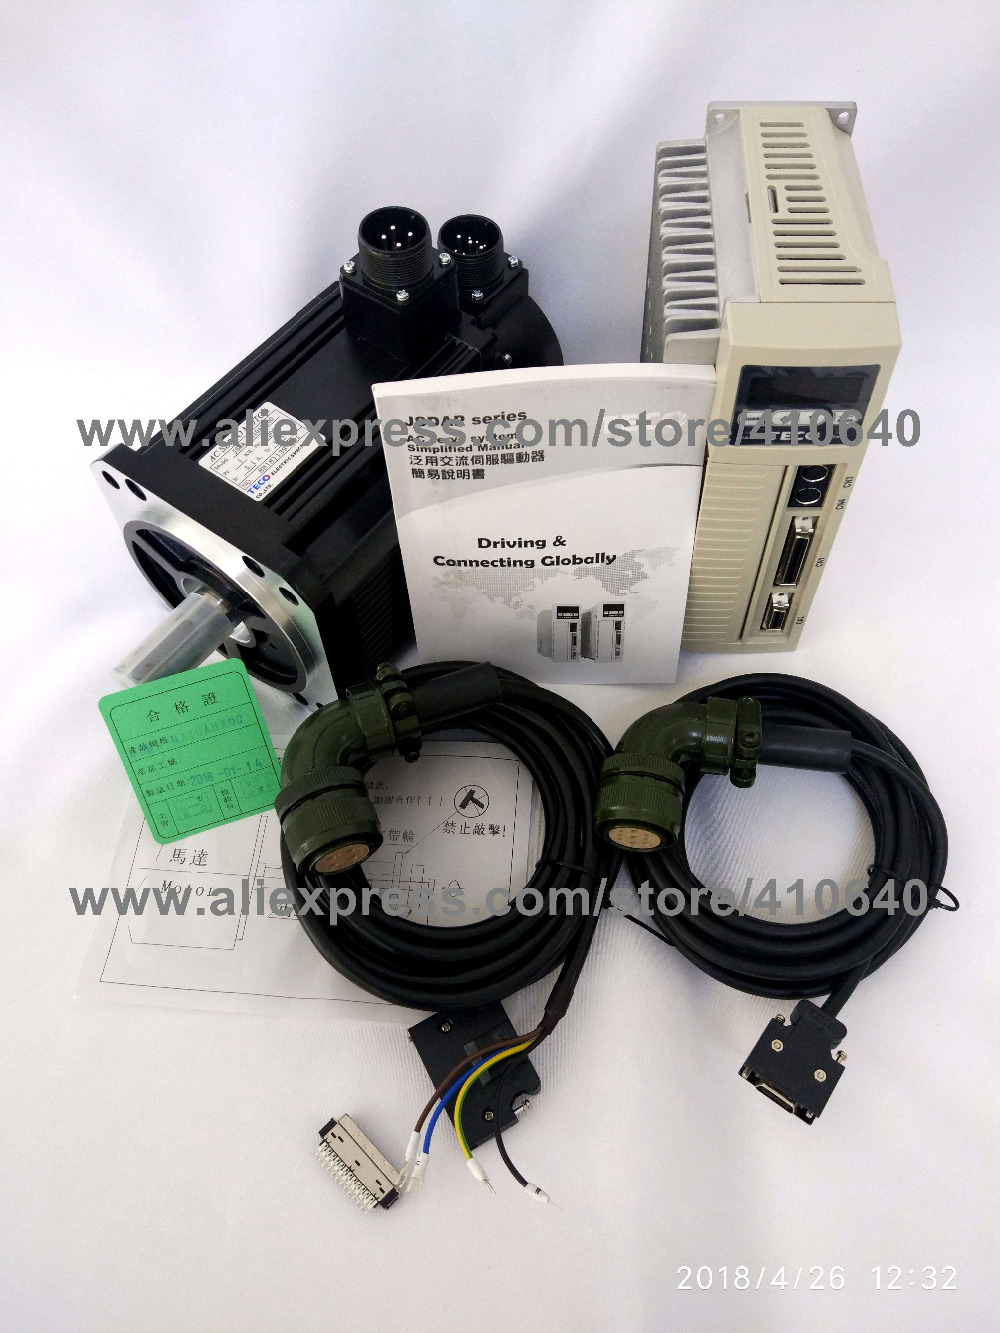 Genuine TECO 3KW Servo Motor JSMA-MB30ABK01 and Servo Motor Drive JSDA-75A3 with 42.96 Peak Torque